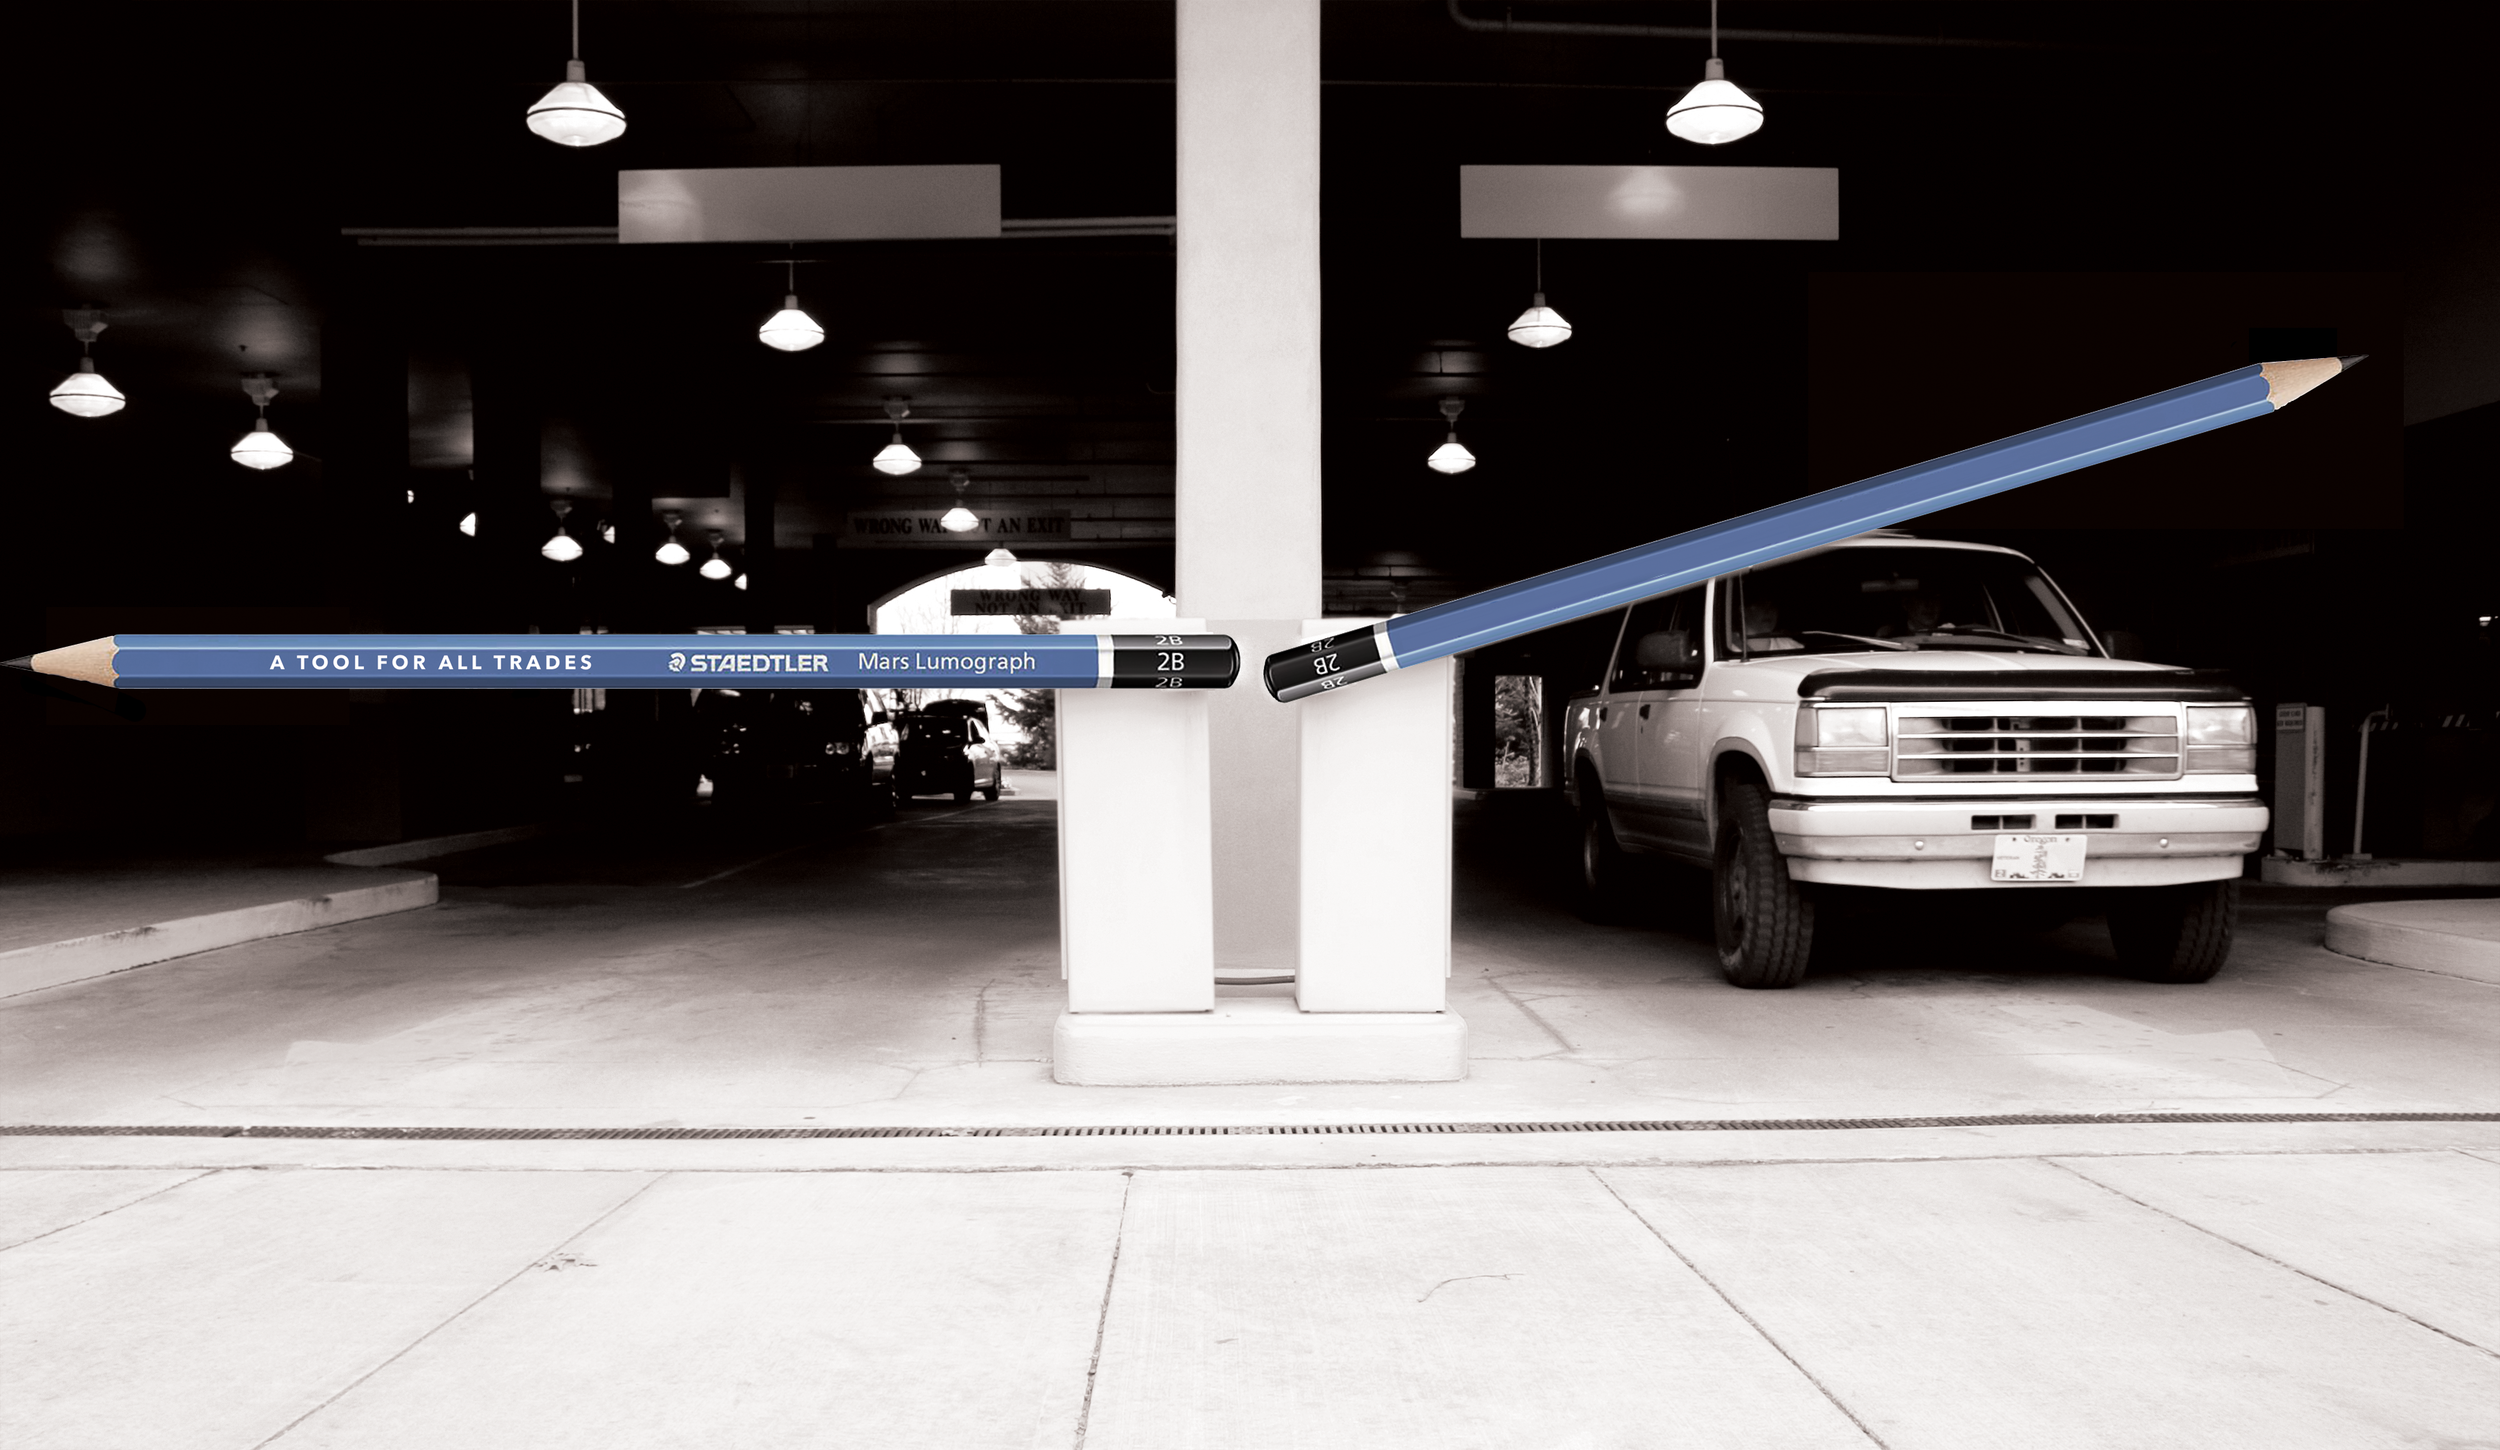 Parking Garage to a Museum:  Pursuit of Knowledge